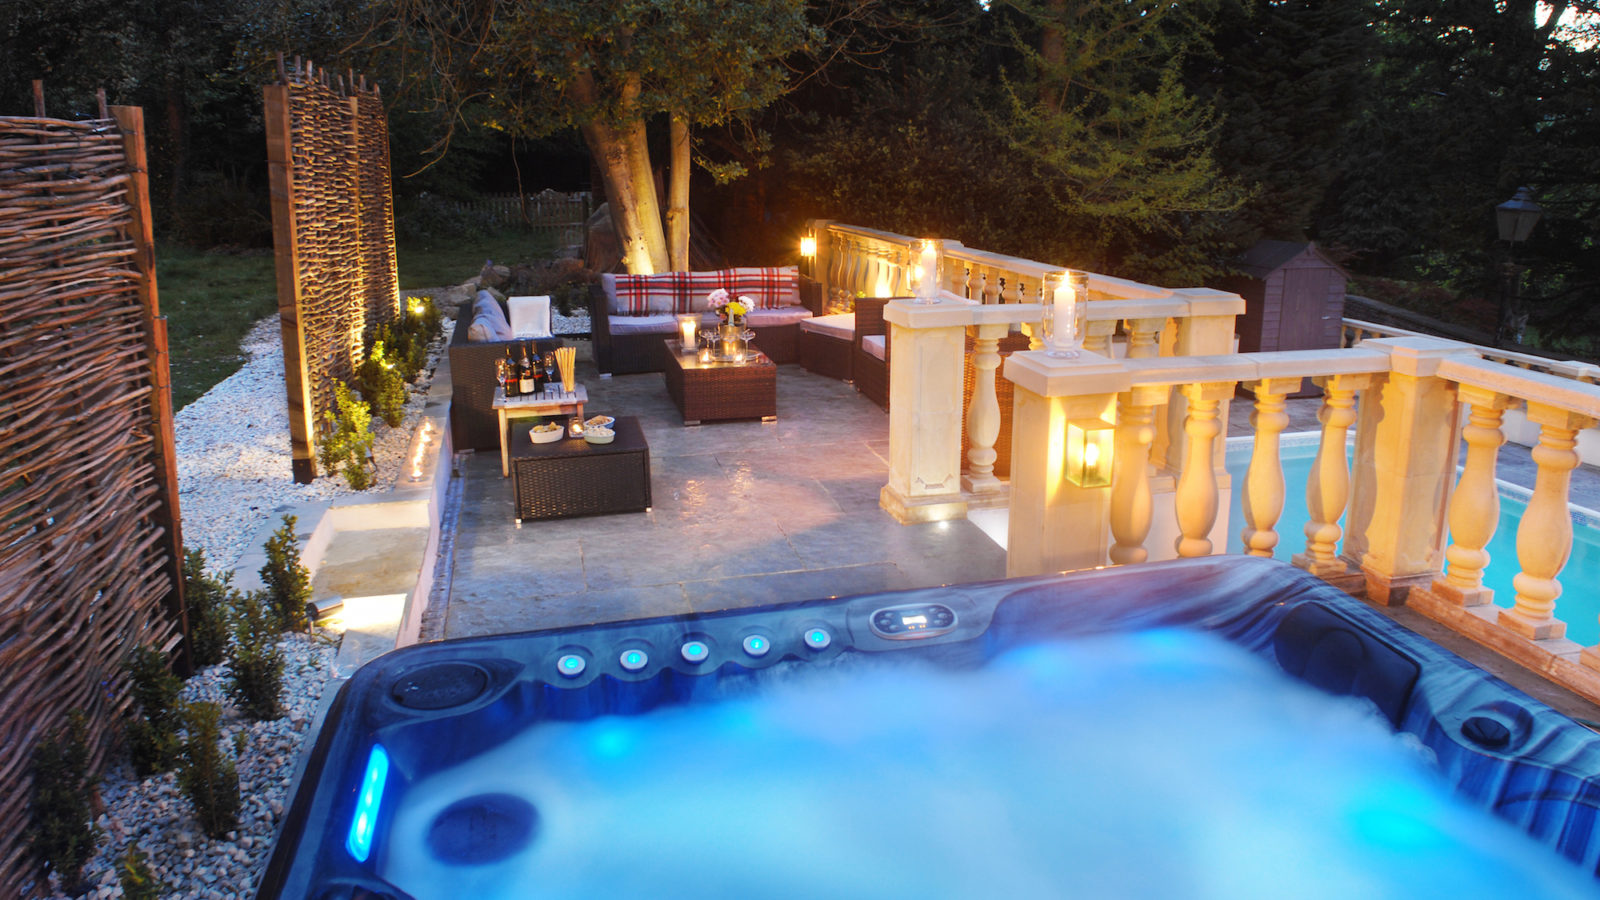 Party houses weekend party houses - Hen party houses with swimming pool ...